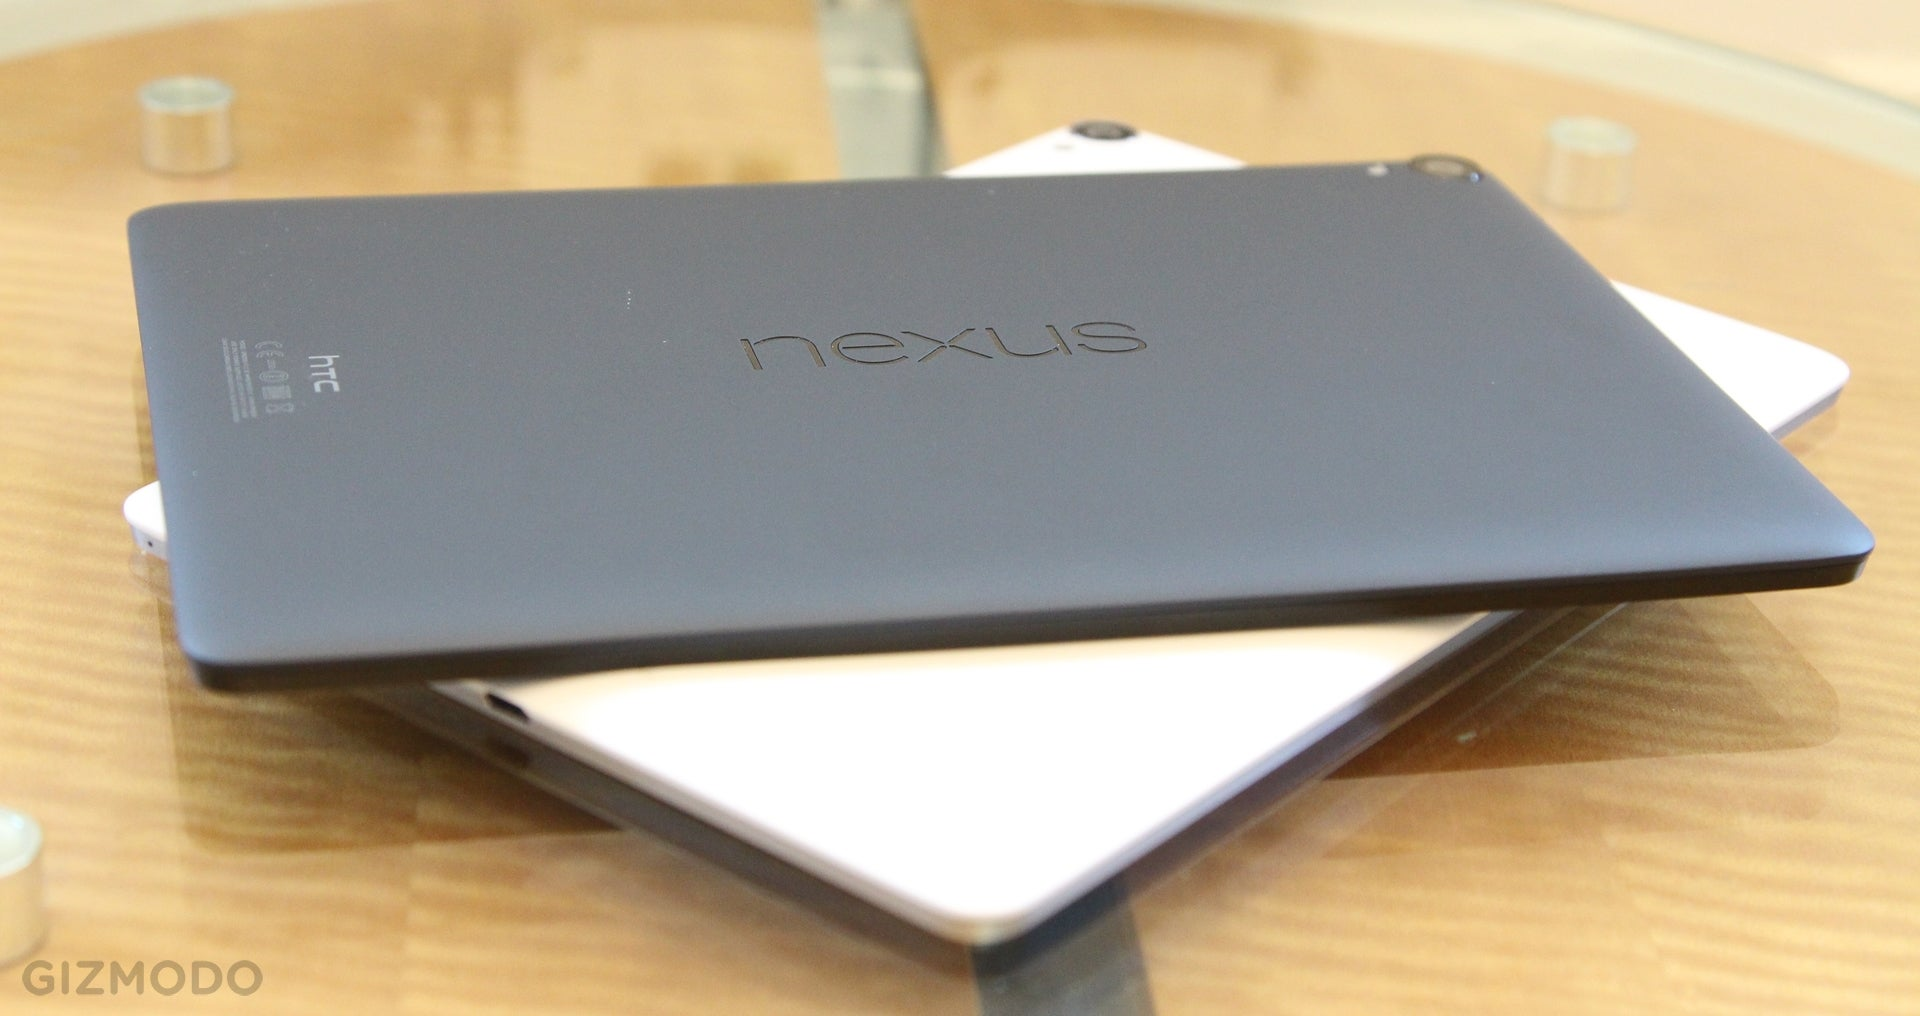 Nexus 9 Hands-On: Android's iPad Air Is a Looker, Not a Stunner